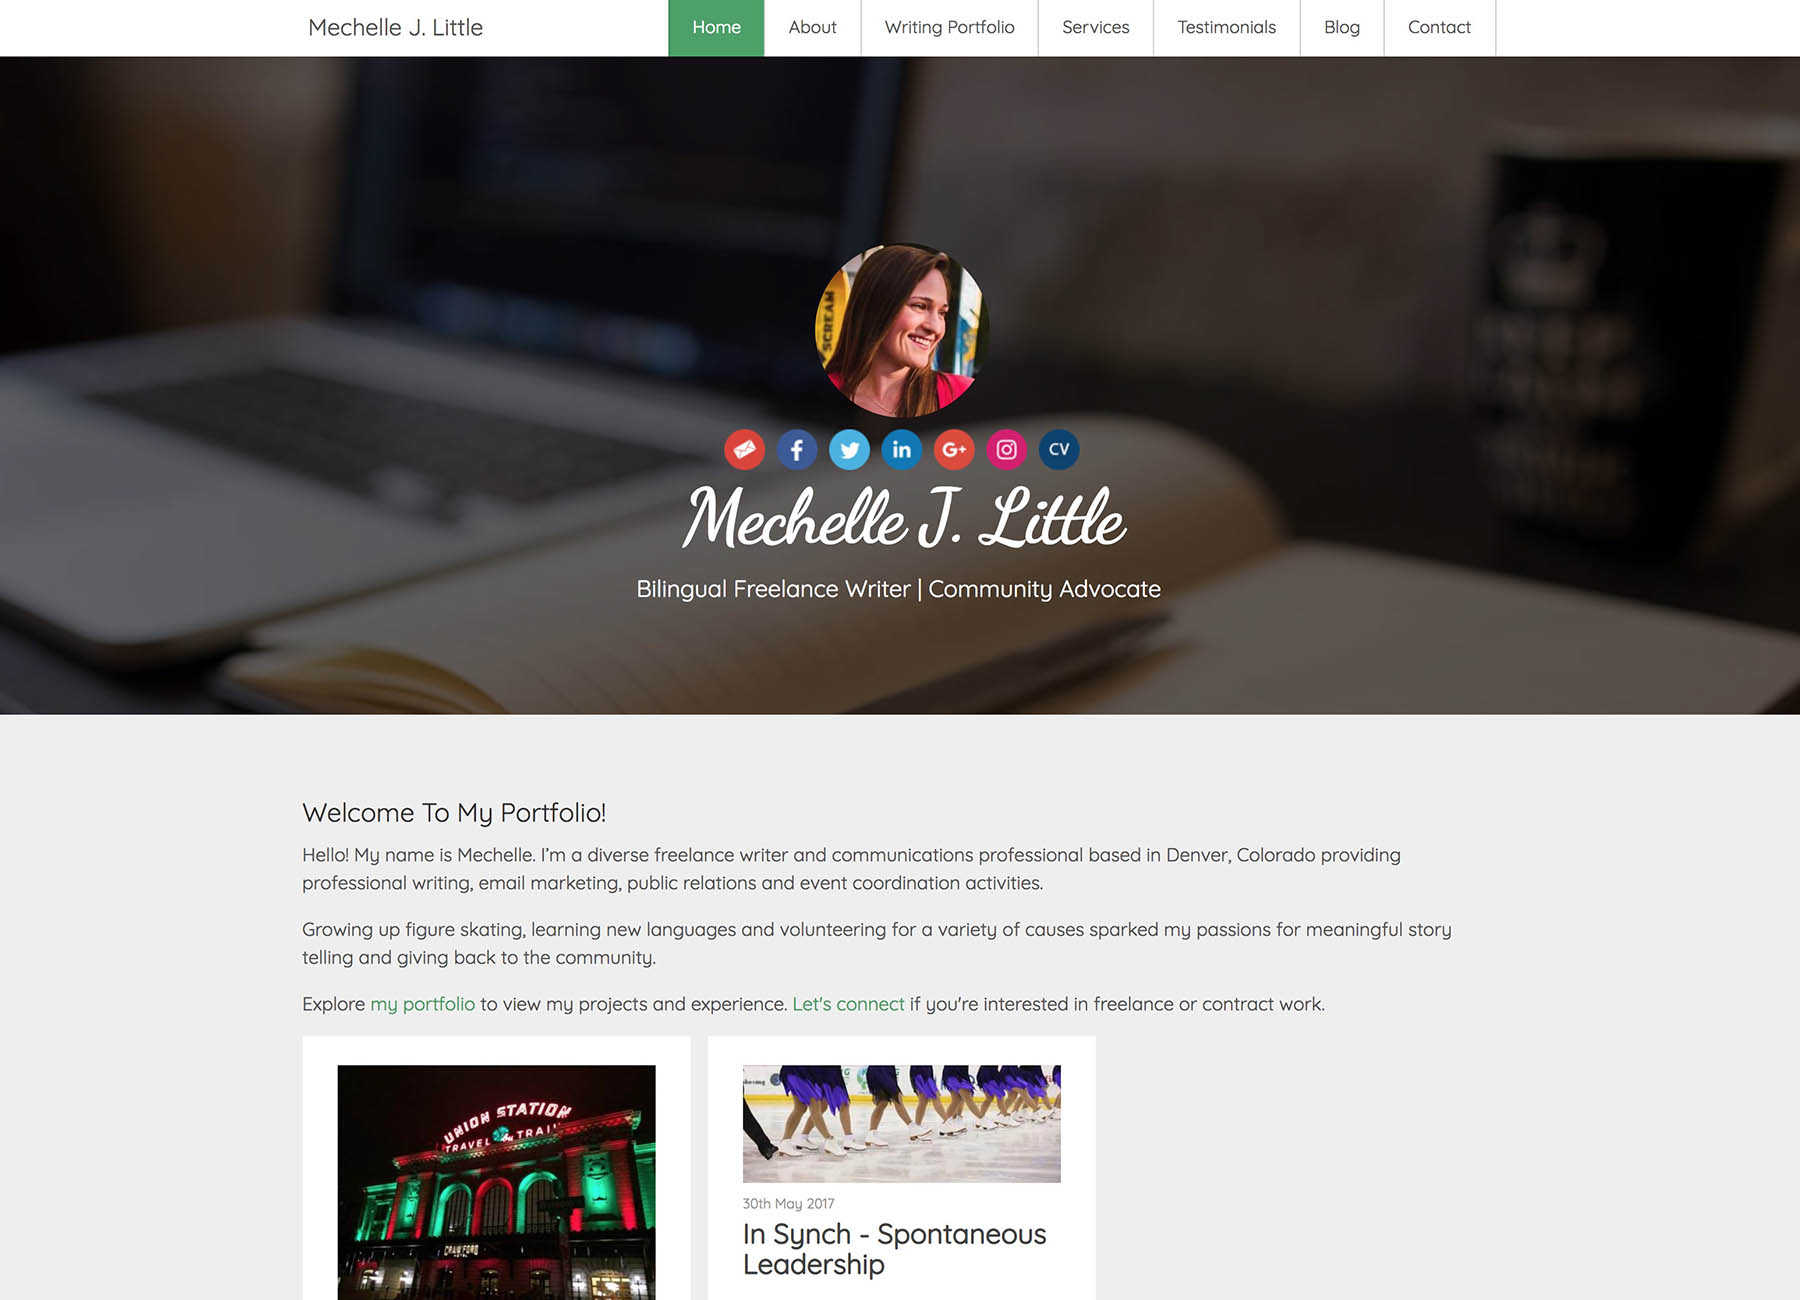 Mechelle Little Portfolio